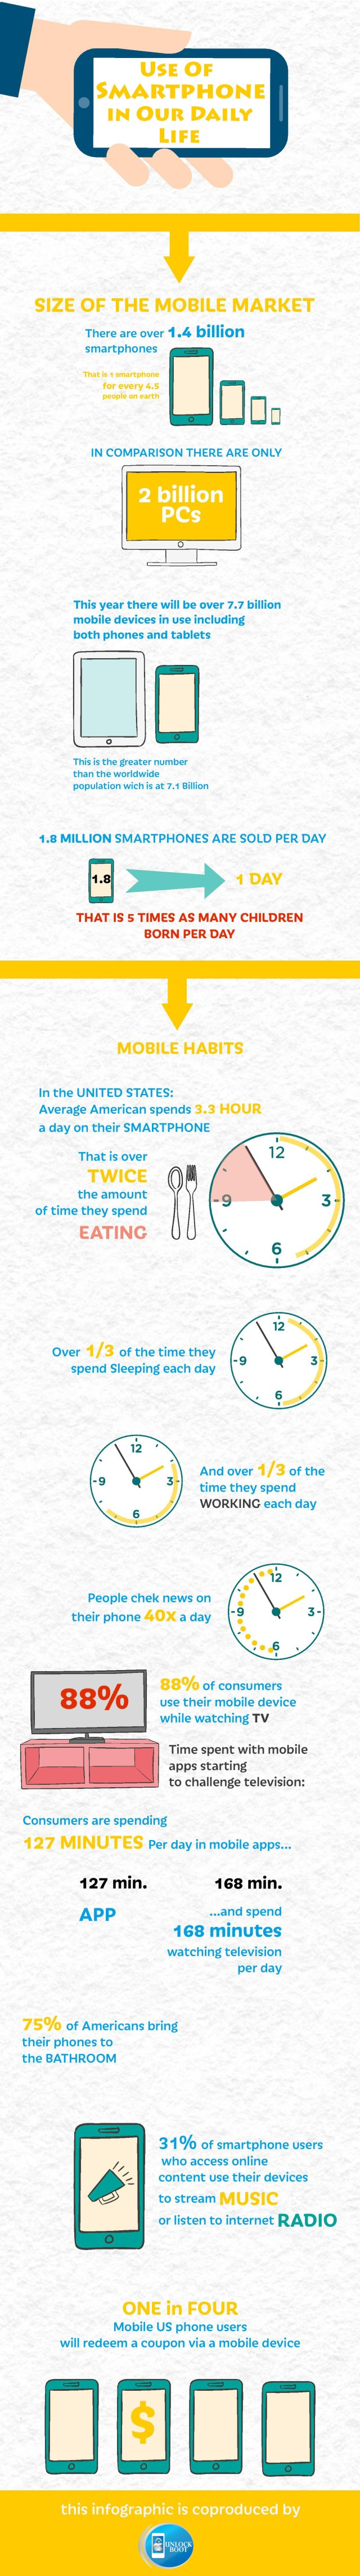 usage-of-smartphone-in-our-daily-life_56d79166cb7eb-1